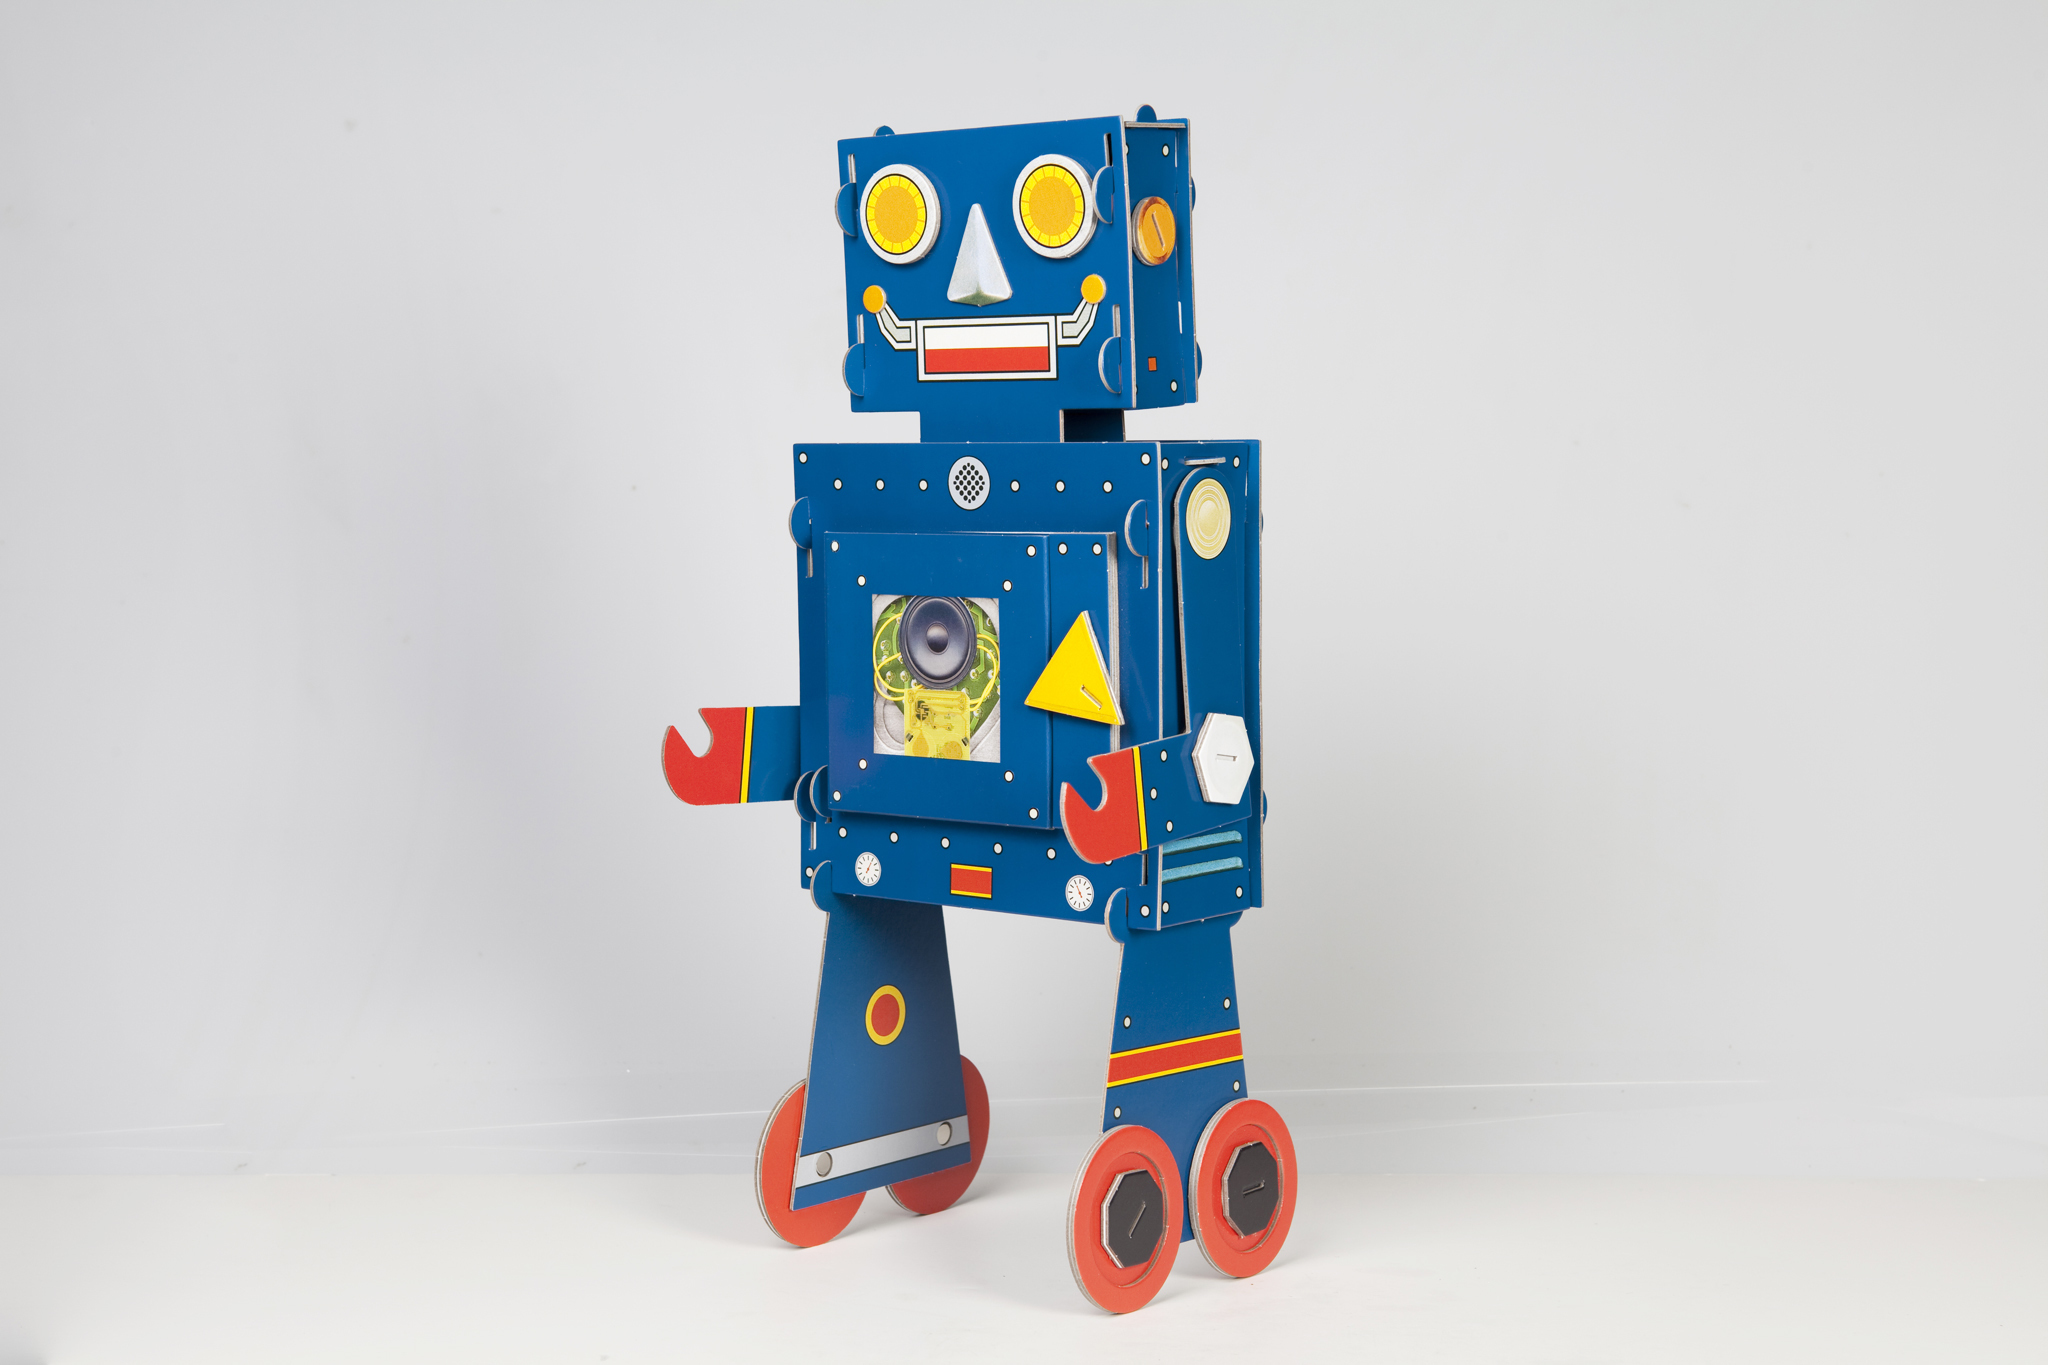 My Little Blue Robot by Stephen T. Johnson